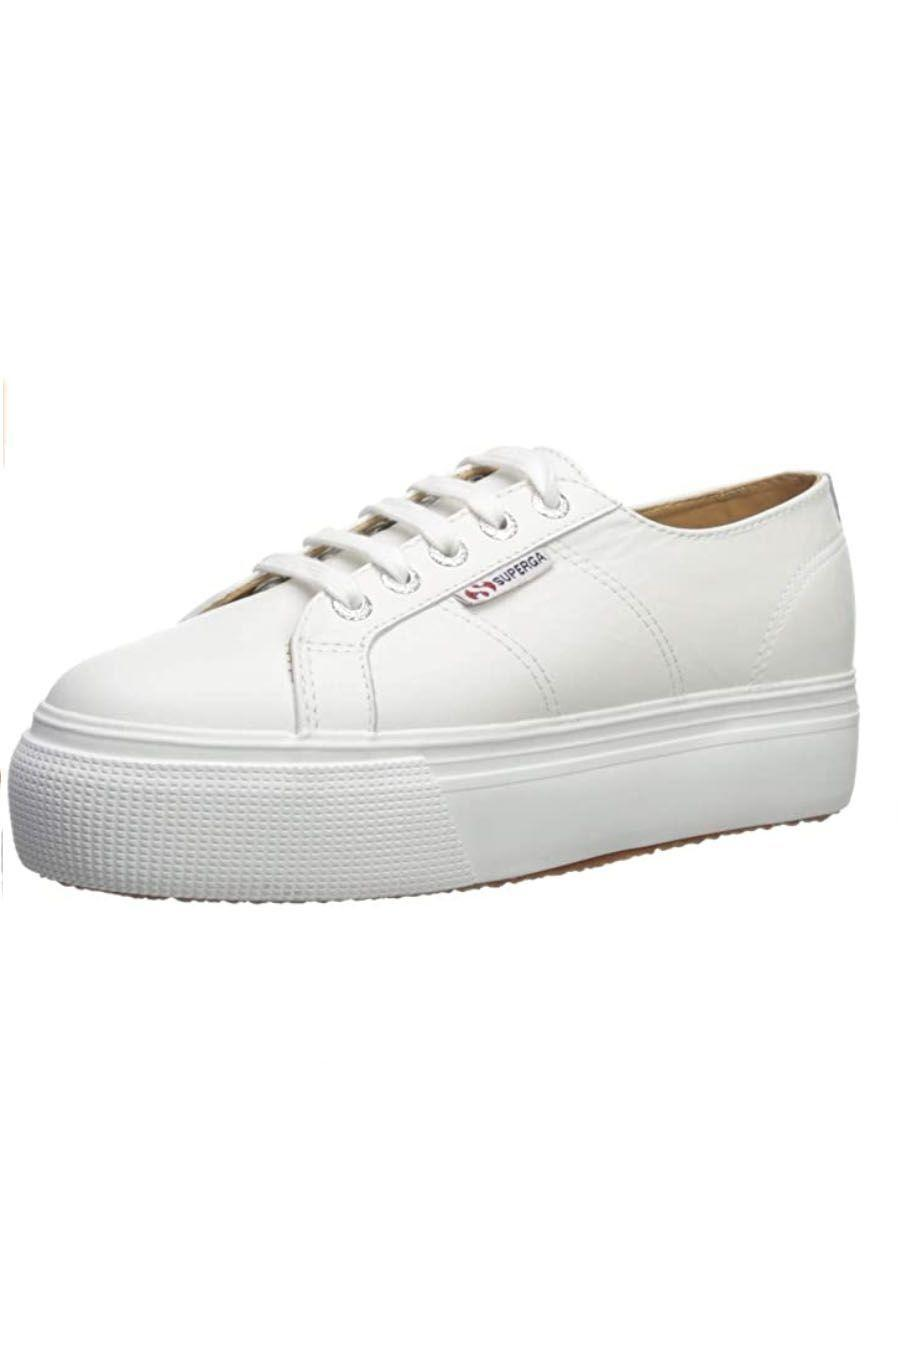 """<p><strong>Superga</strong></p><p>amazon.com</p><p><strong>$109.95</strong></p><p><a href=""""https://www.amazon.com/dp/B07H5MW1DN?tag=syn-yahoo-20&ascsubtag=%5Bartid%7C10049.g.36746335%5Bsrc%7Cyahoo-us"""" rel=""""nofollow noopener"""" target=""""_blank"""" data-ylk=""""slk:Shop Now"""" class=""""link rapid-noclick-resp"""">Shop Now</a></p><p>Superga shoes are a must on Amazon. (Even Kate Middleton is a fan!) I know these platforms have been on your radar for some time now, and judging from the reviews they are well worth the hype.</p>"""